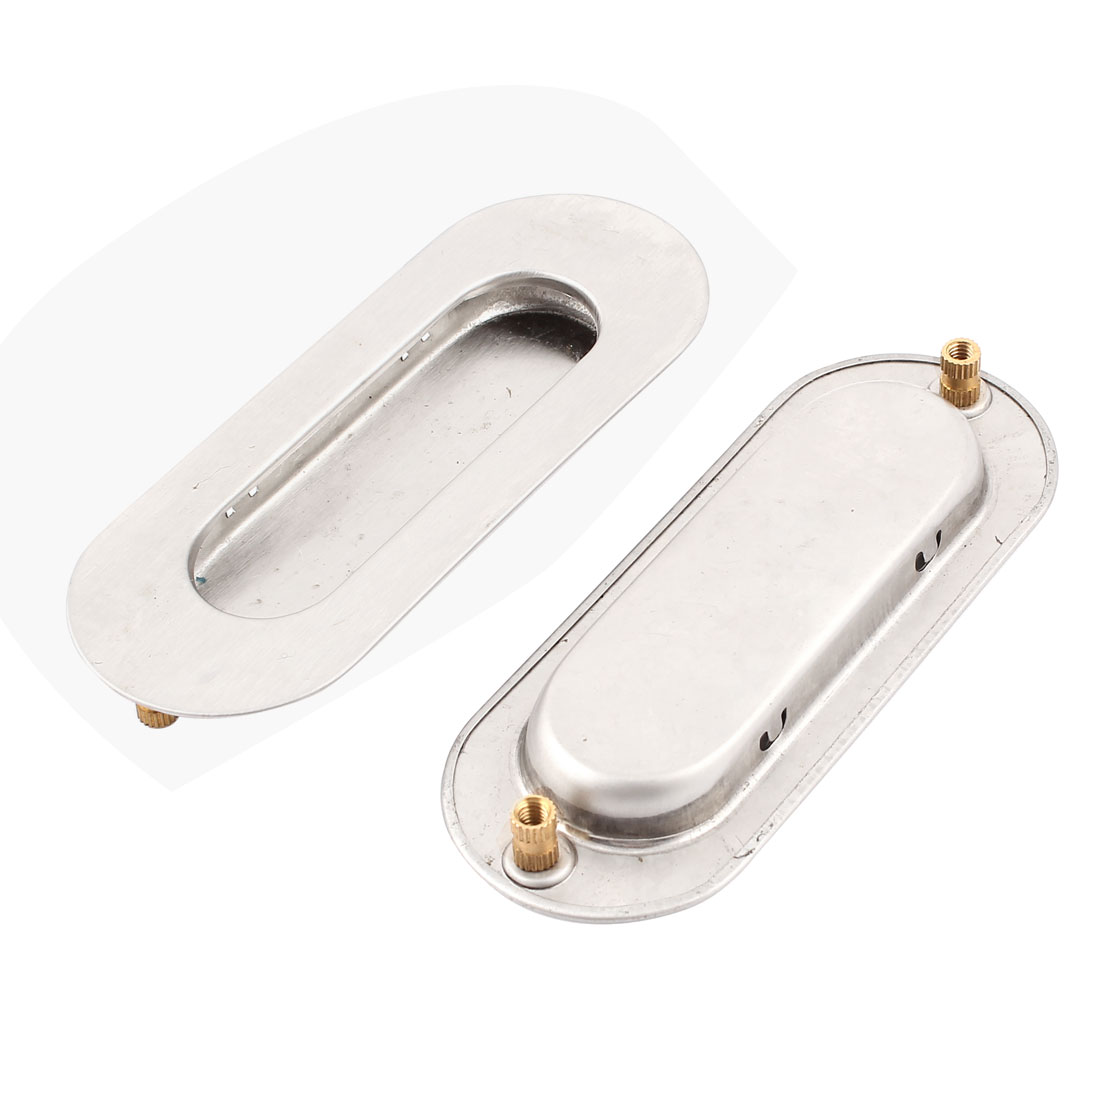 Oval Metal Recessed Drawer Door Flush Pull Handle Hardware 110 x 41mm 2Pcs